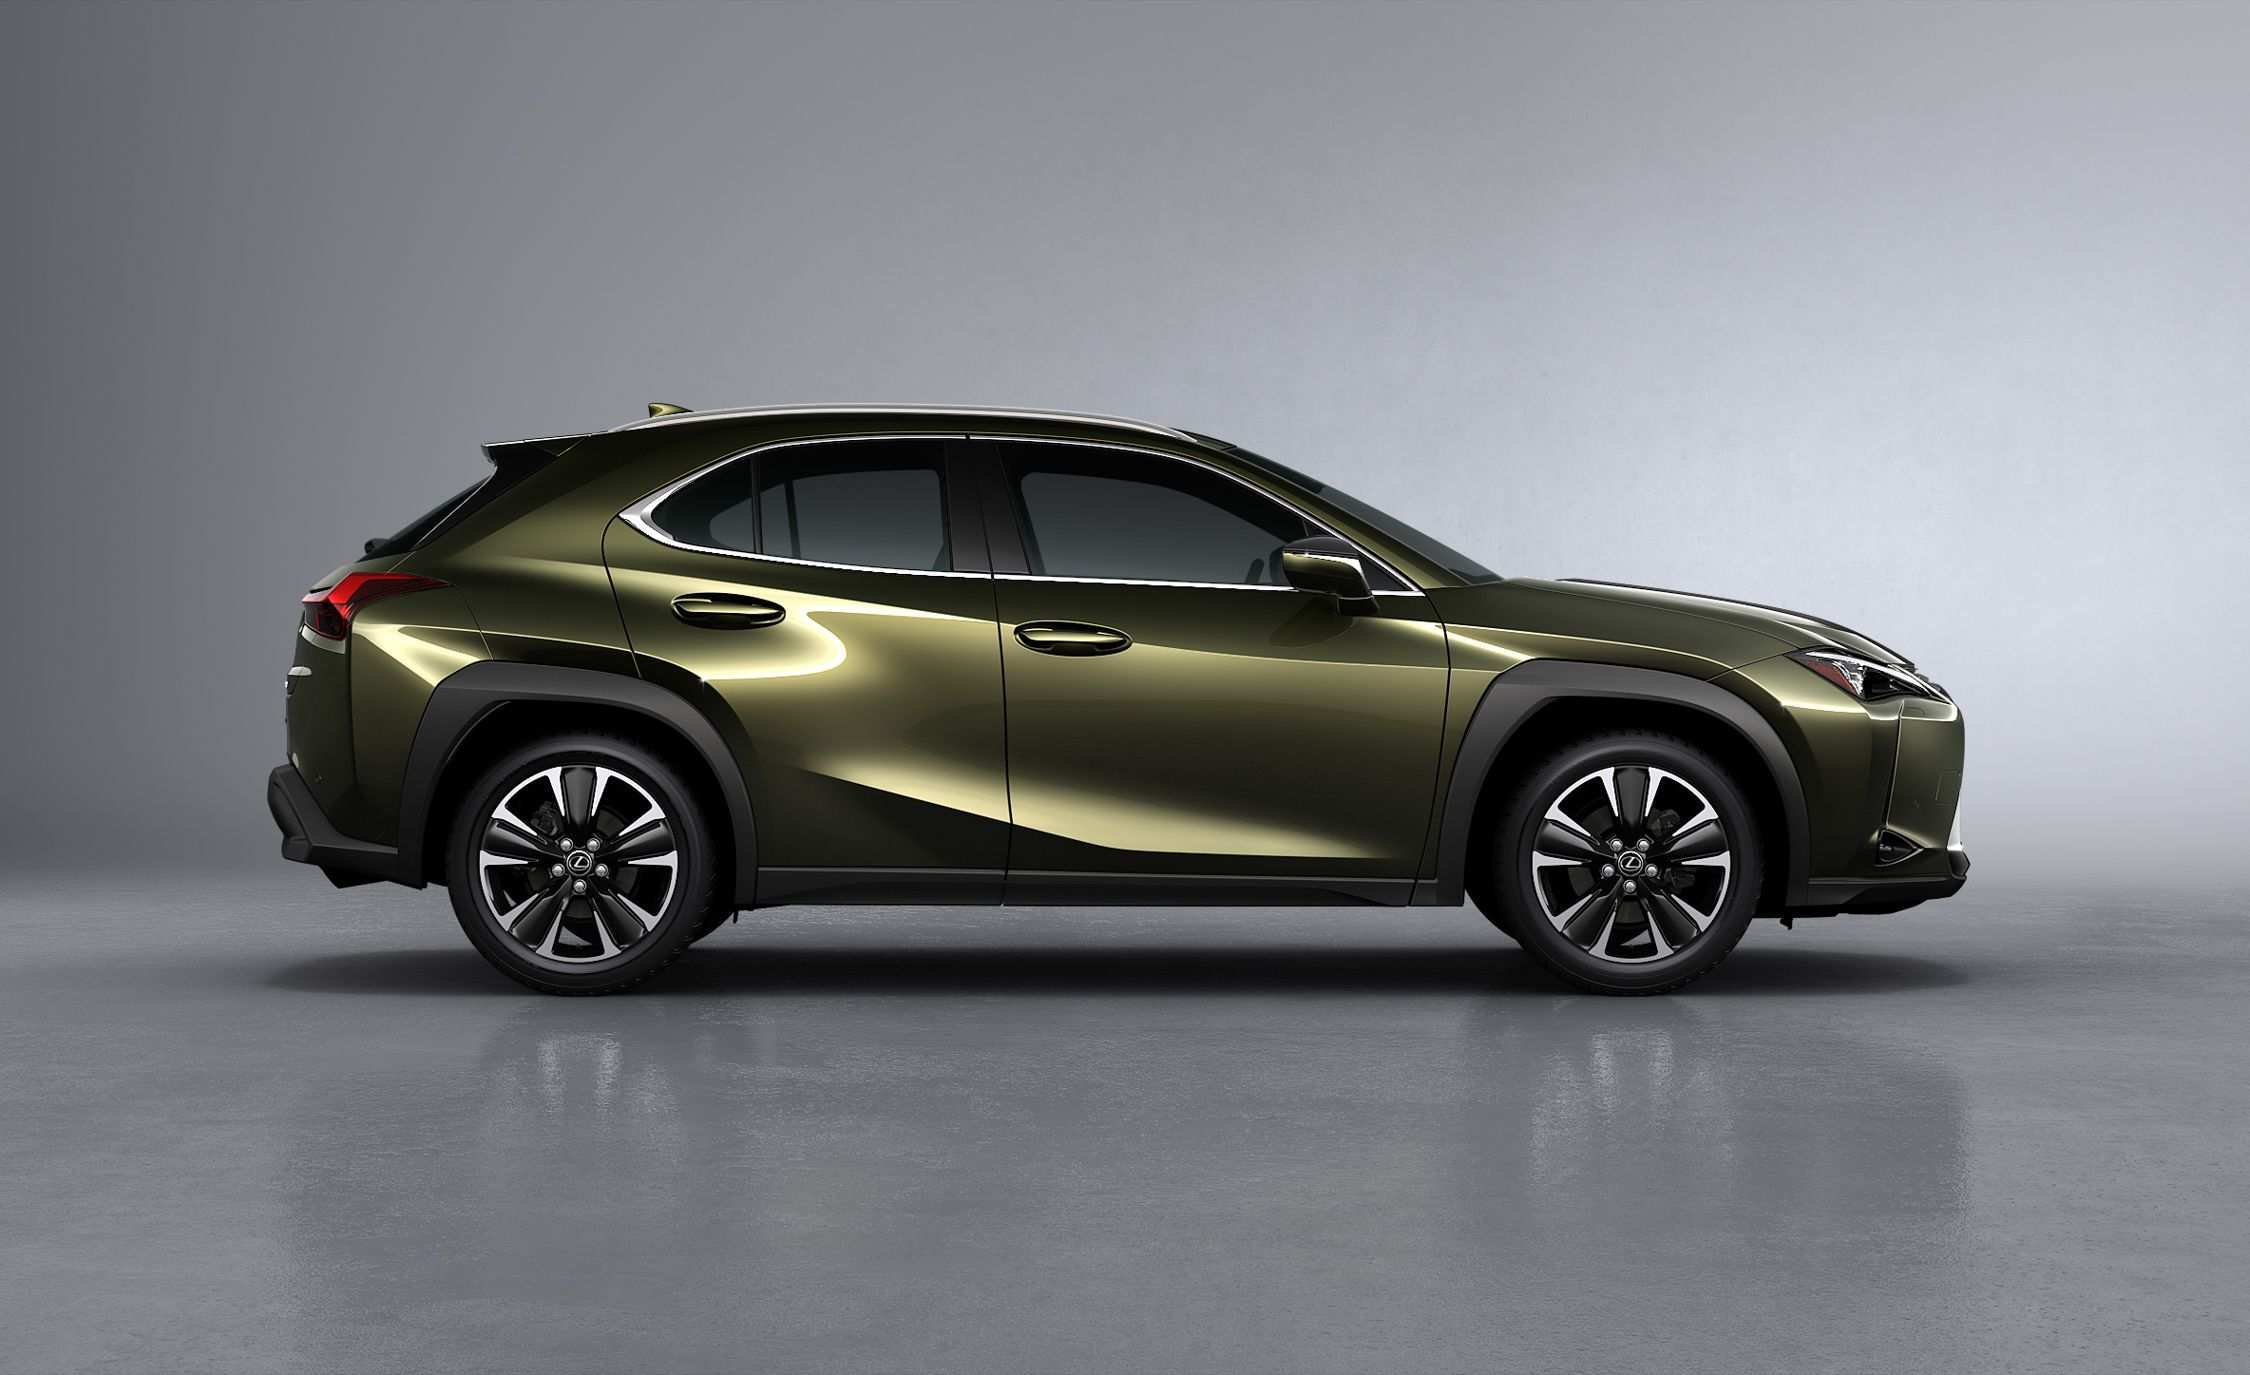 81 All New Best Rx300 Lexus 2019 Release Date Redesign and Concept for Best Rx300 Lexus 2019 Release Date